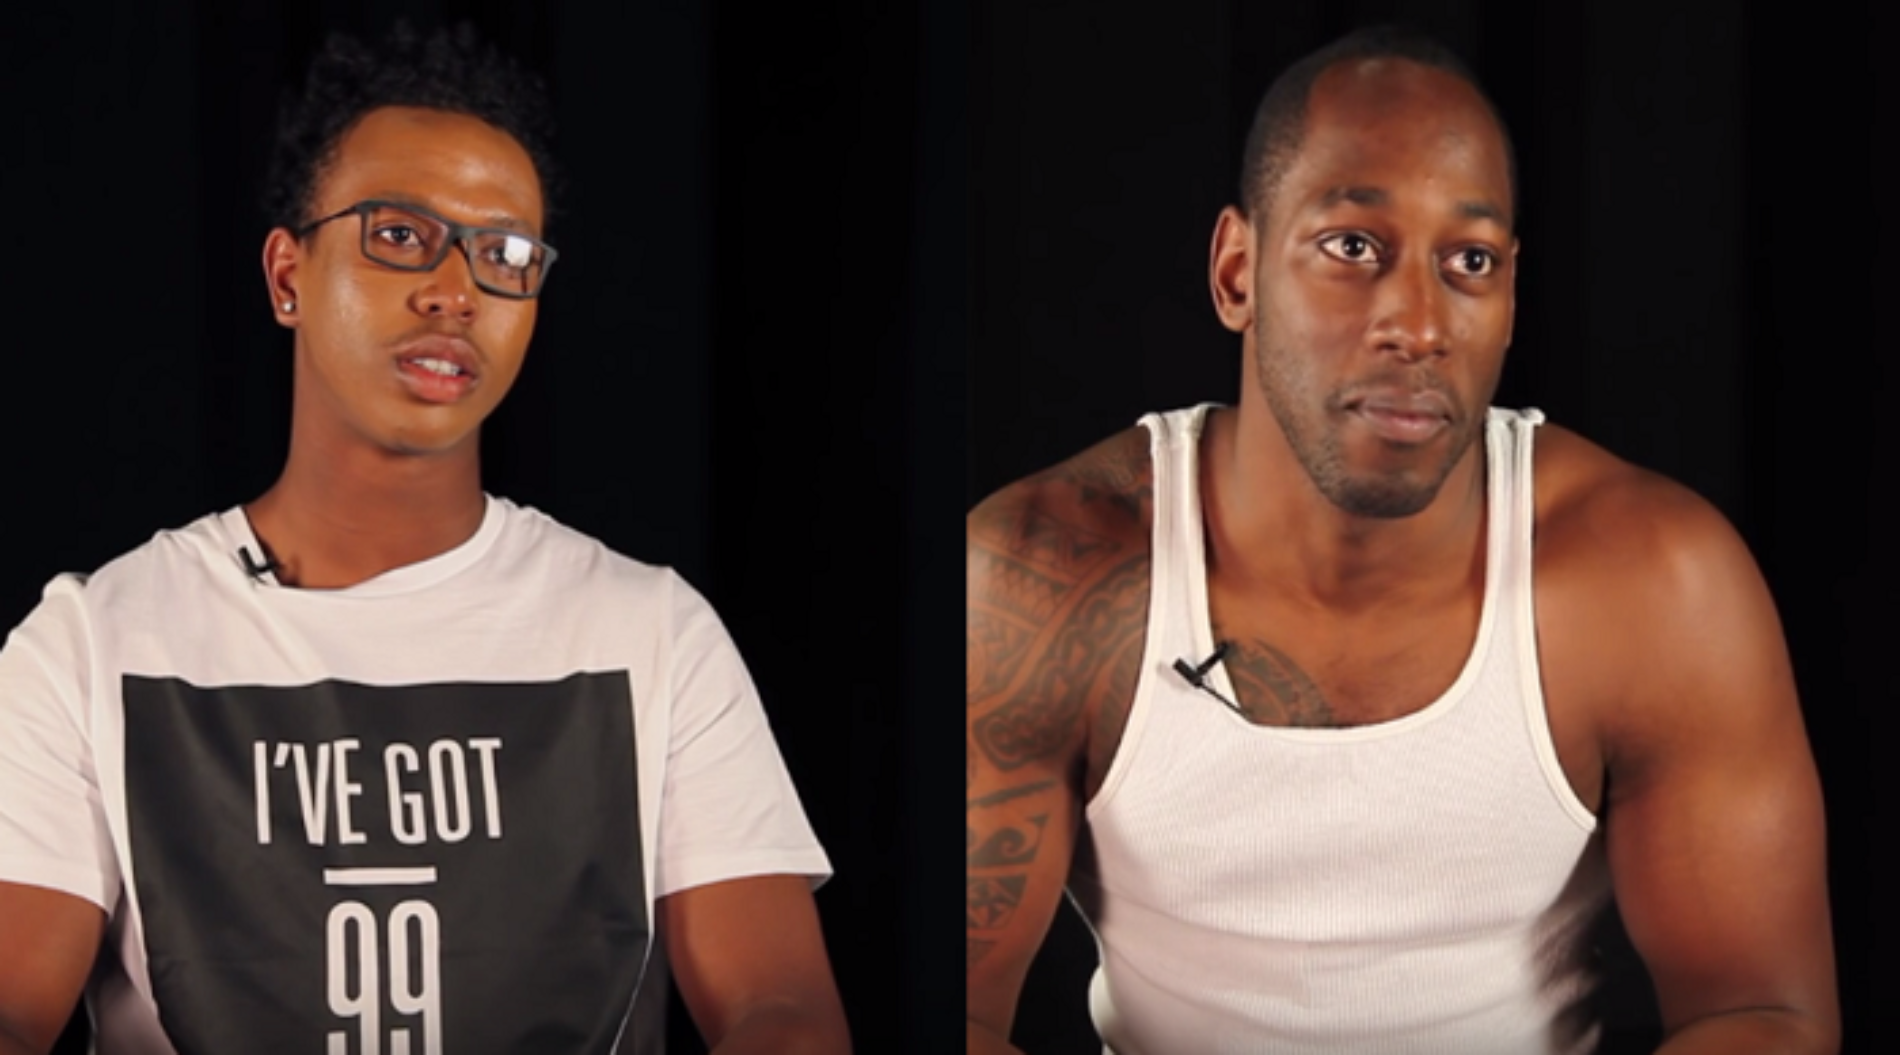 Straight Guys Talk About Getting Hit on By Men In The Locker Room